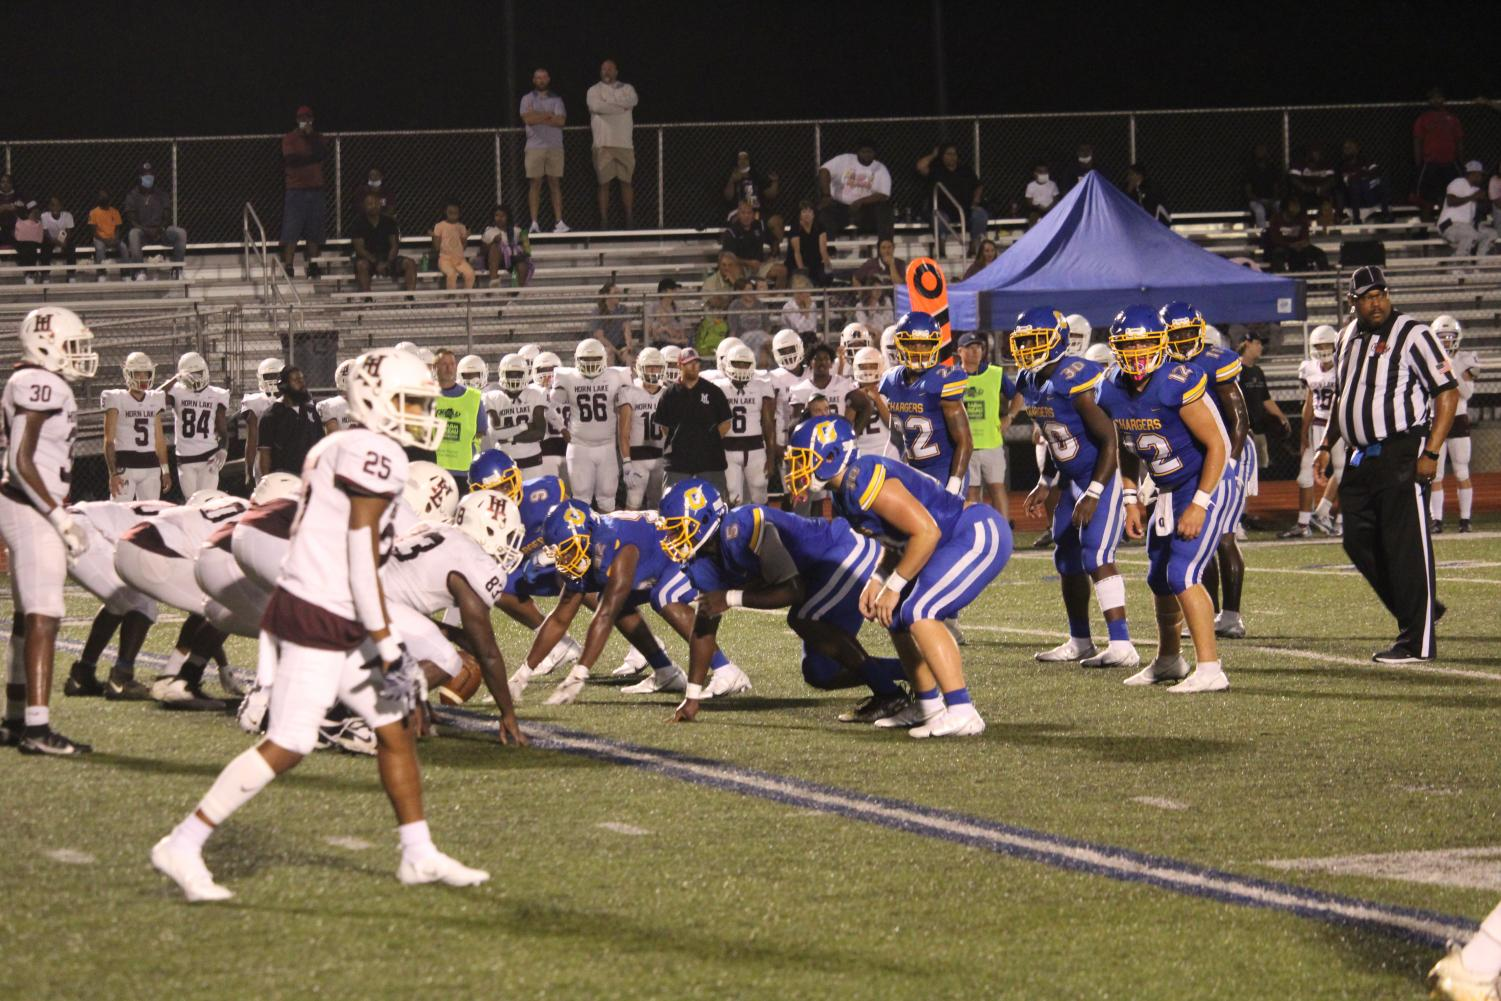 The Charger defense lines up during a play at the jamboree game against Horn Lake on Friday, August 20.